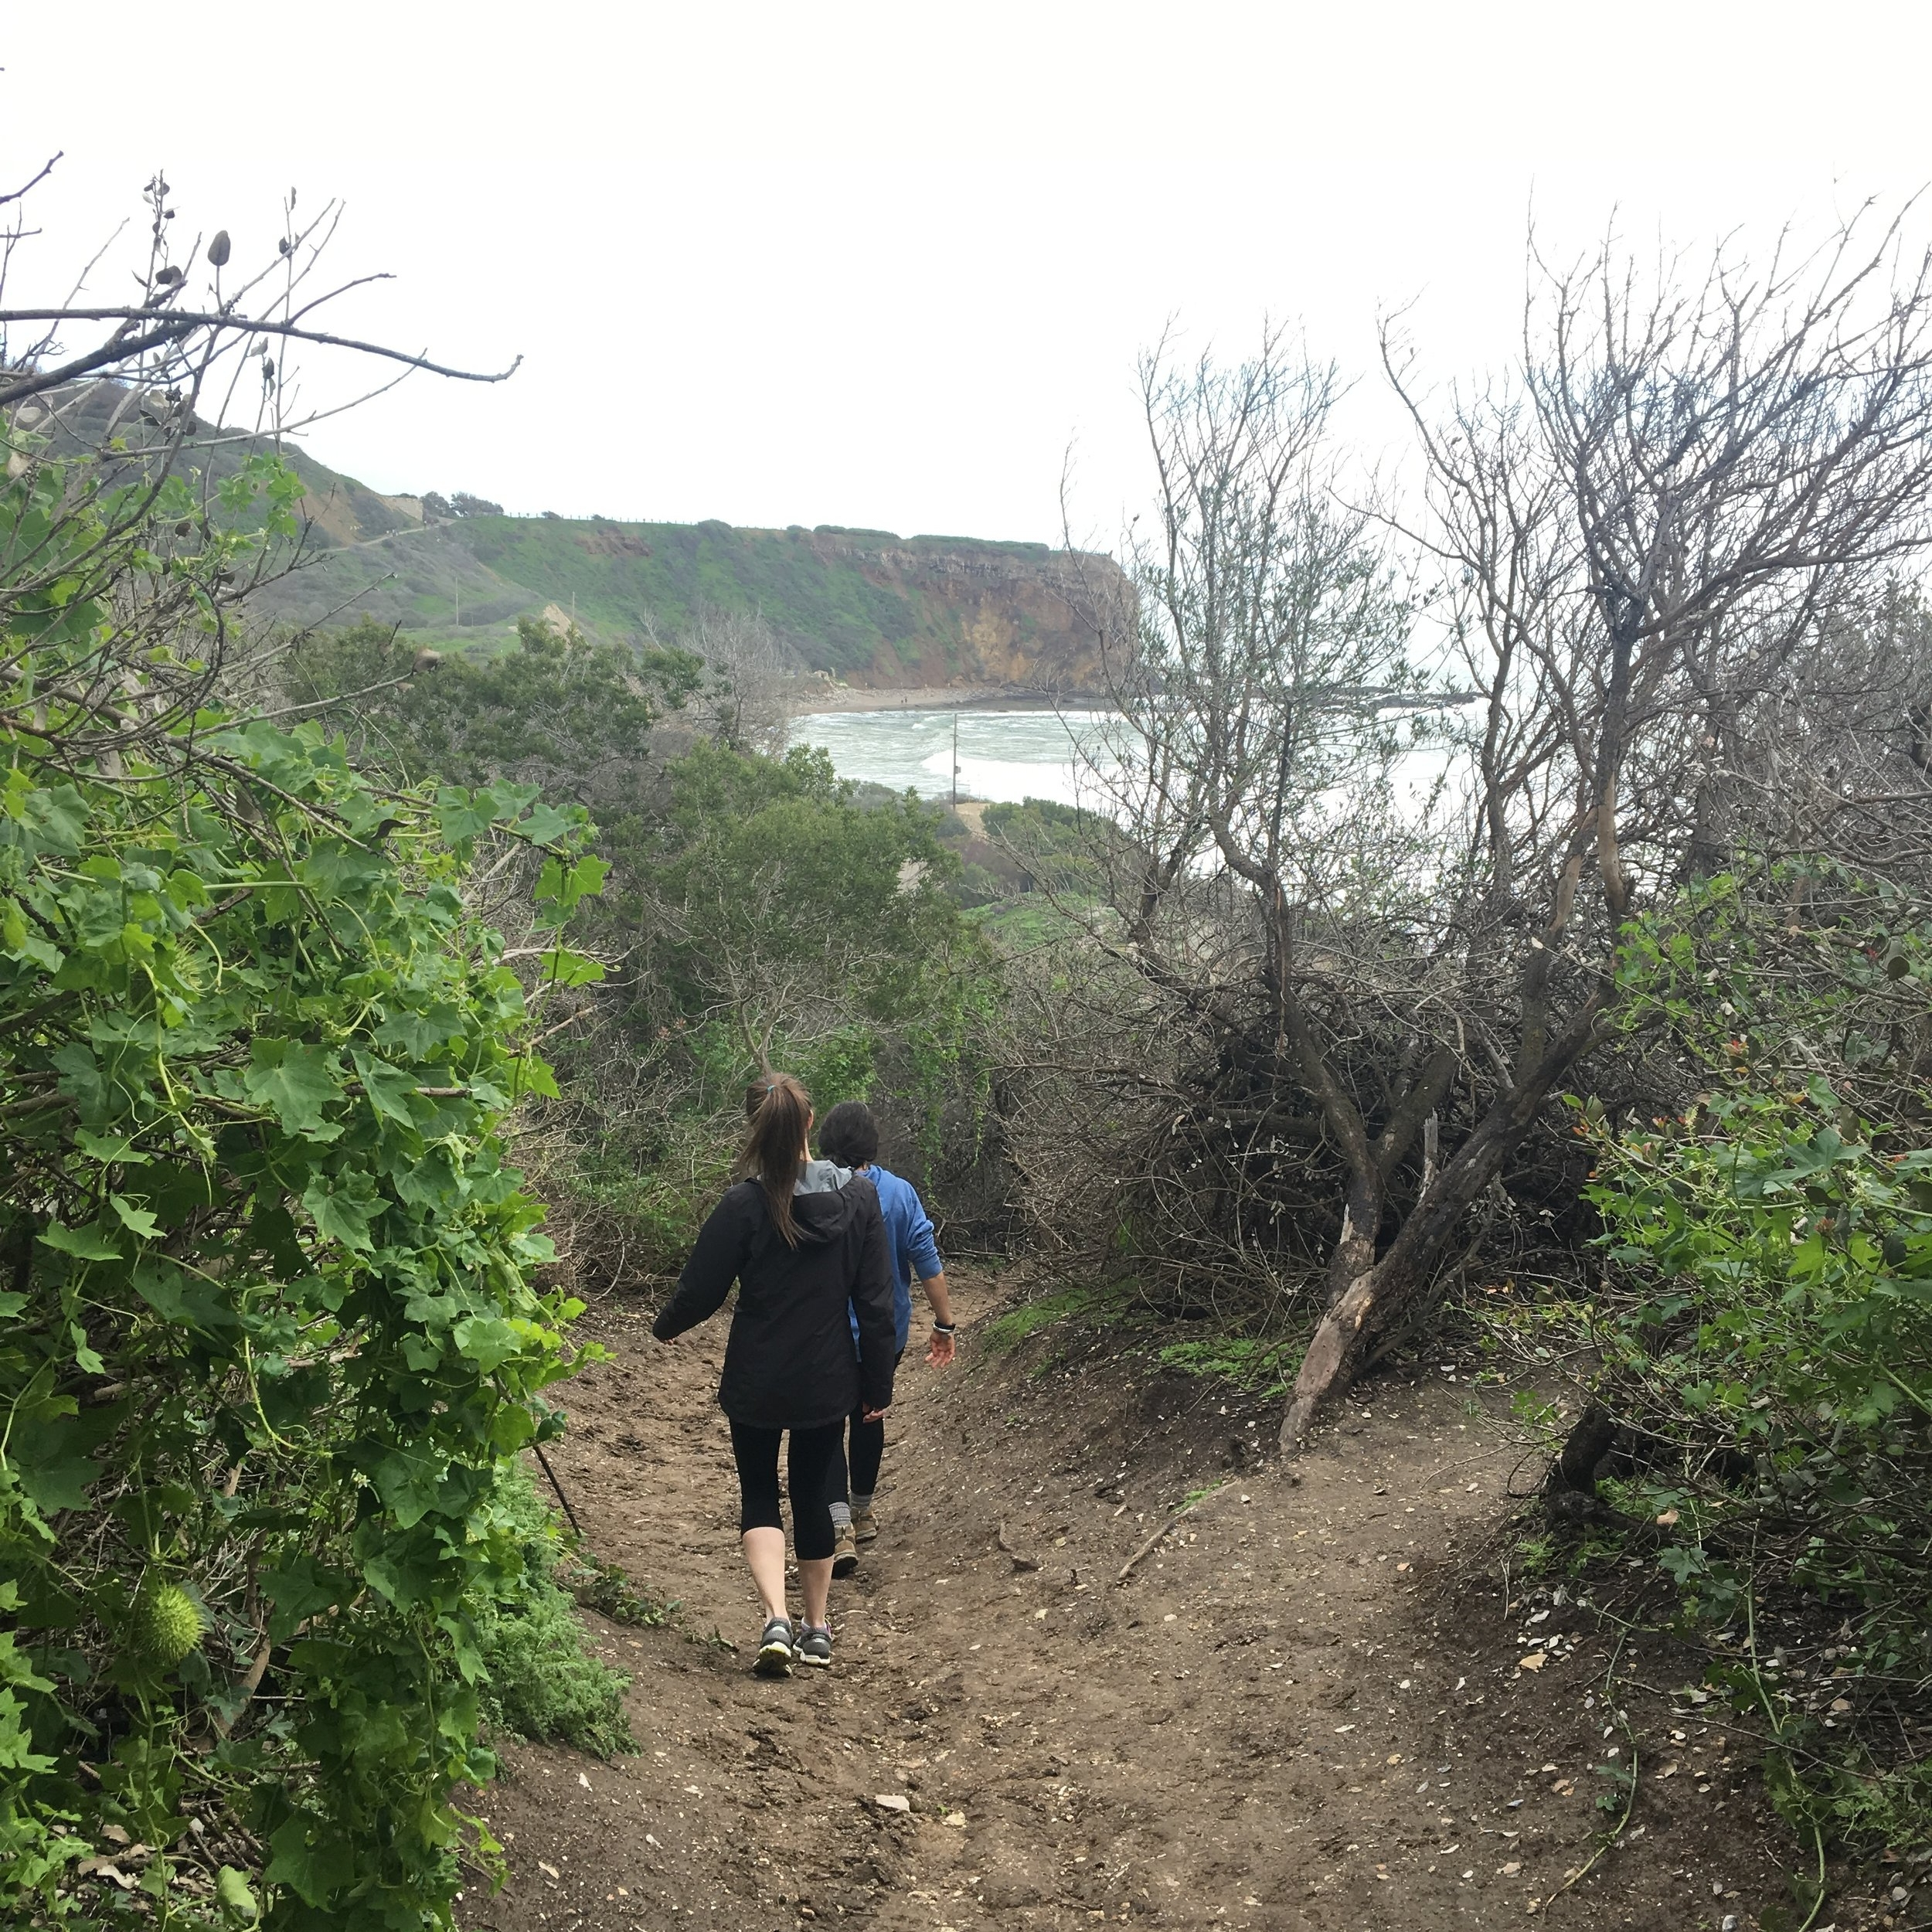 Despite the uncooperative weather and trail closures, we still got to take in some incredible California sights!